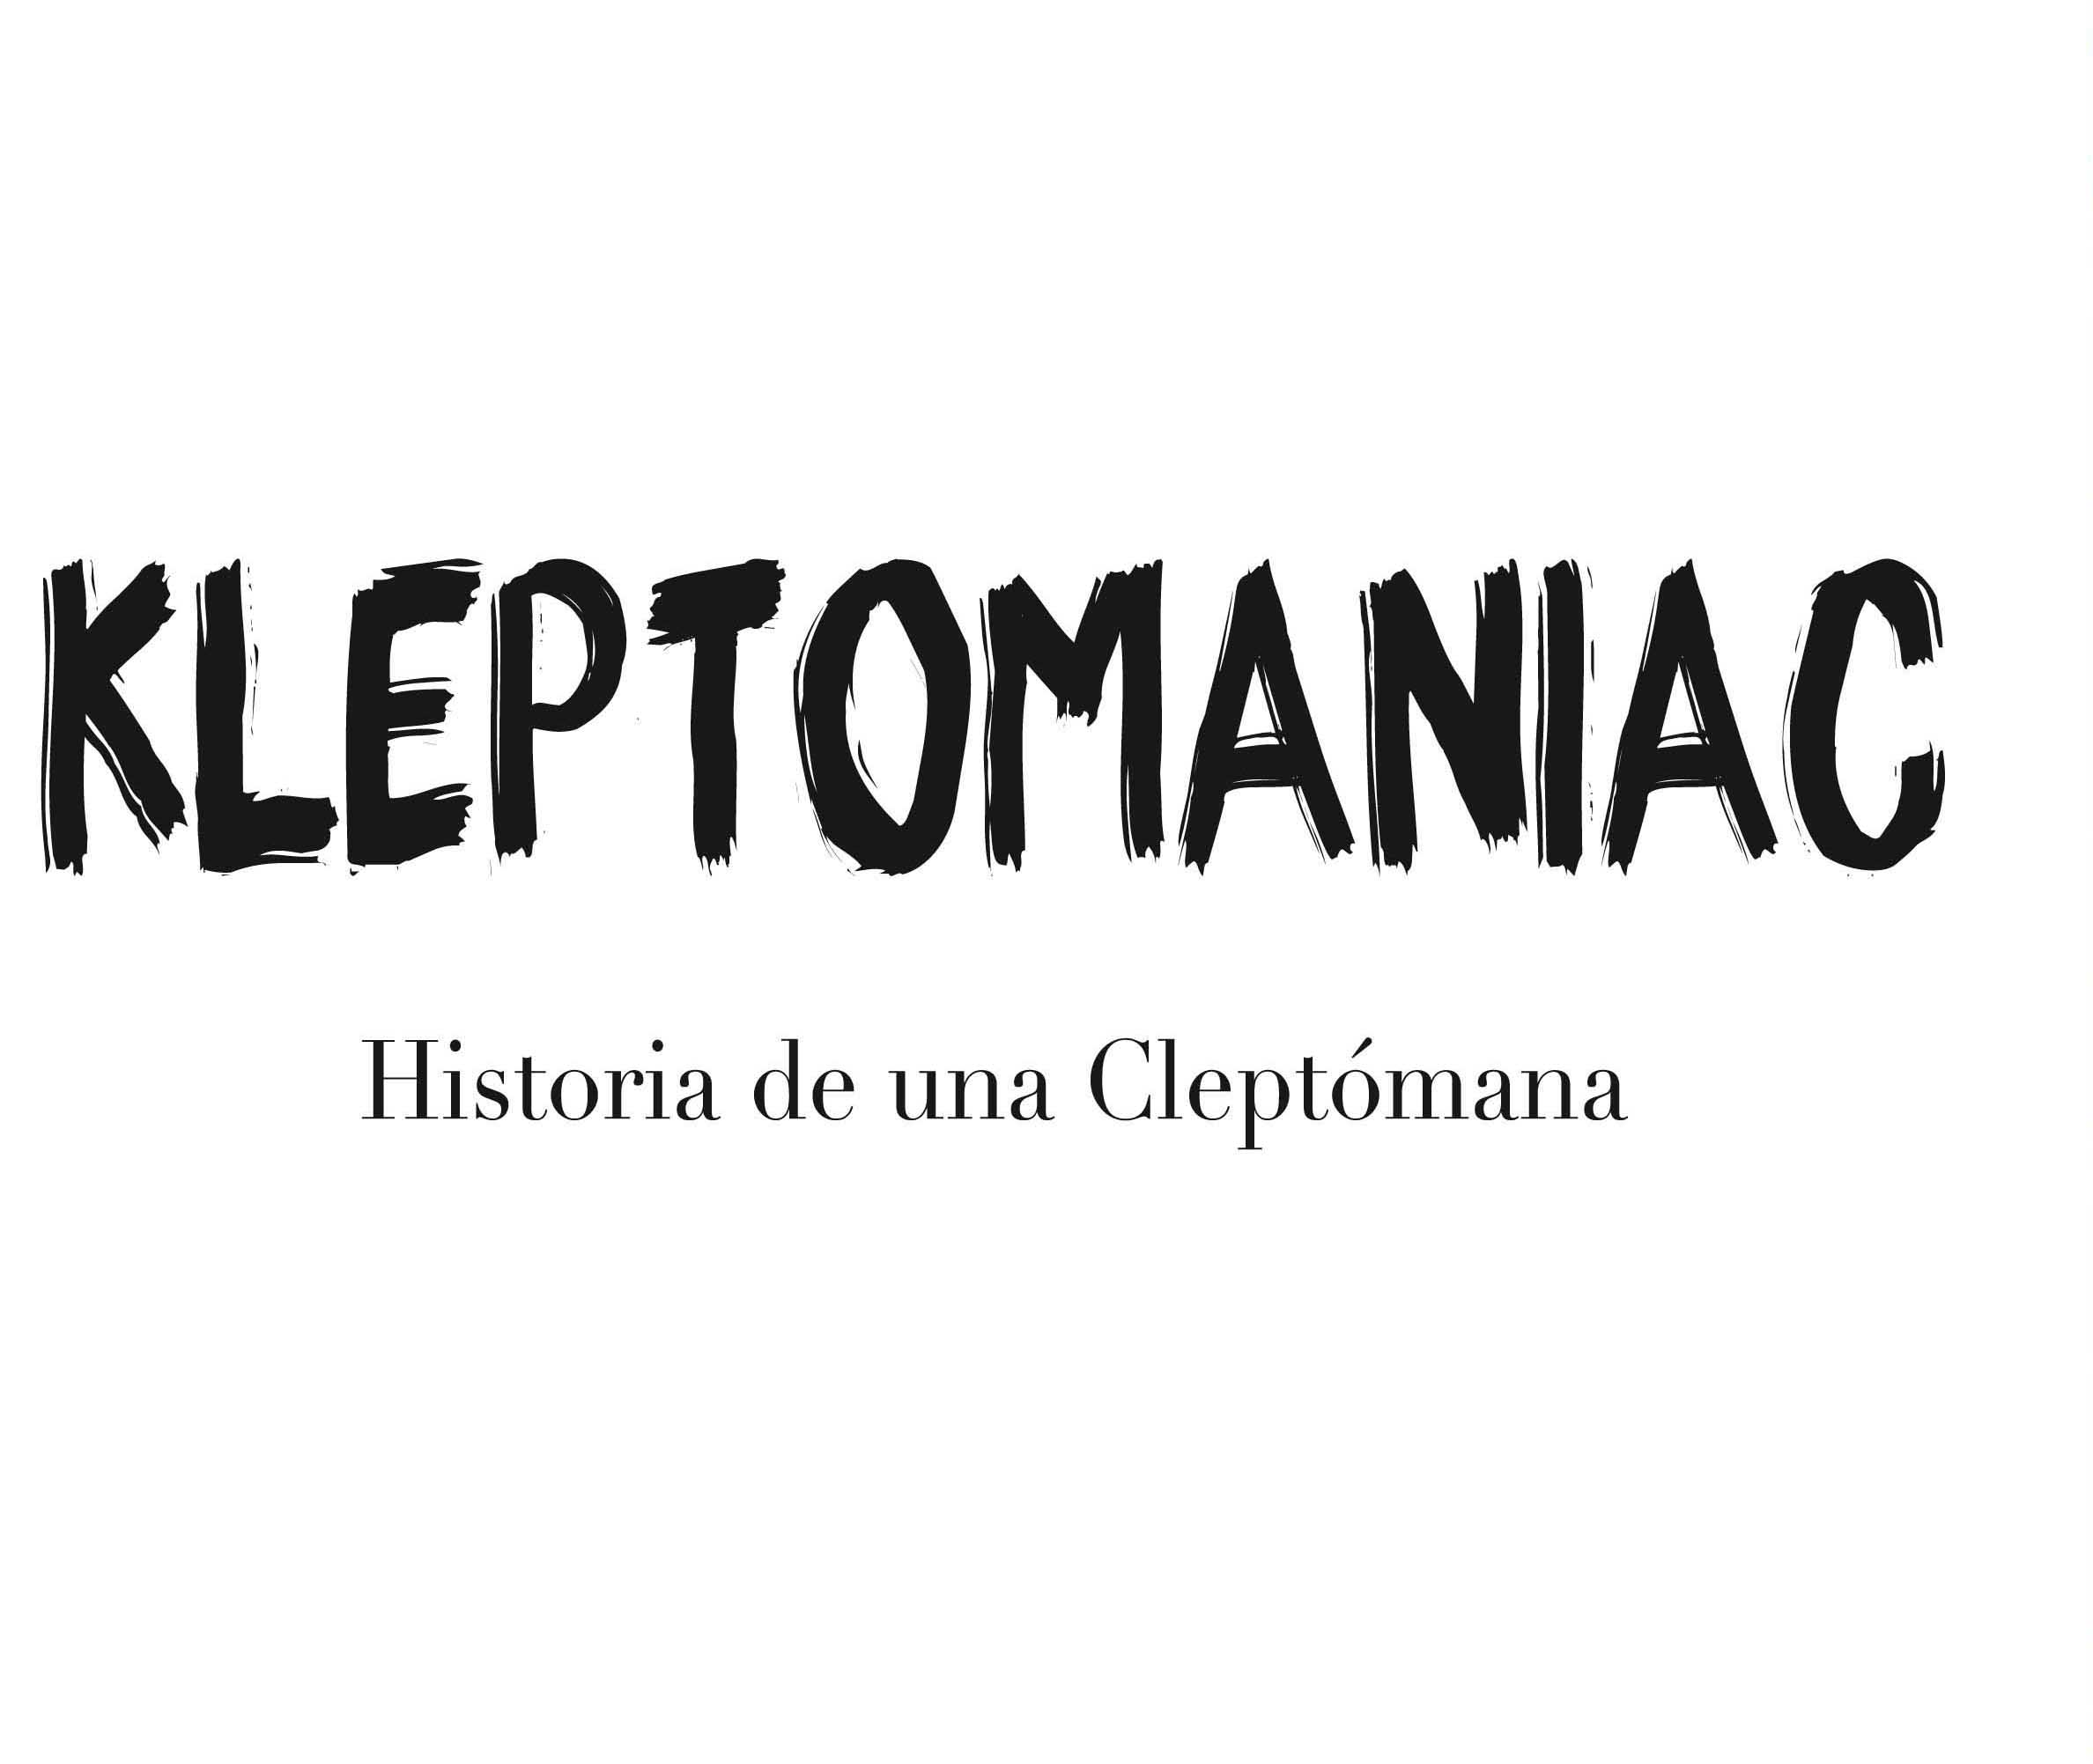 KLEPTOMANIACbaja-1port.jpg